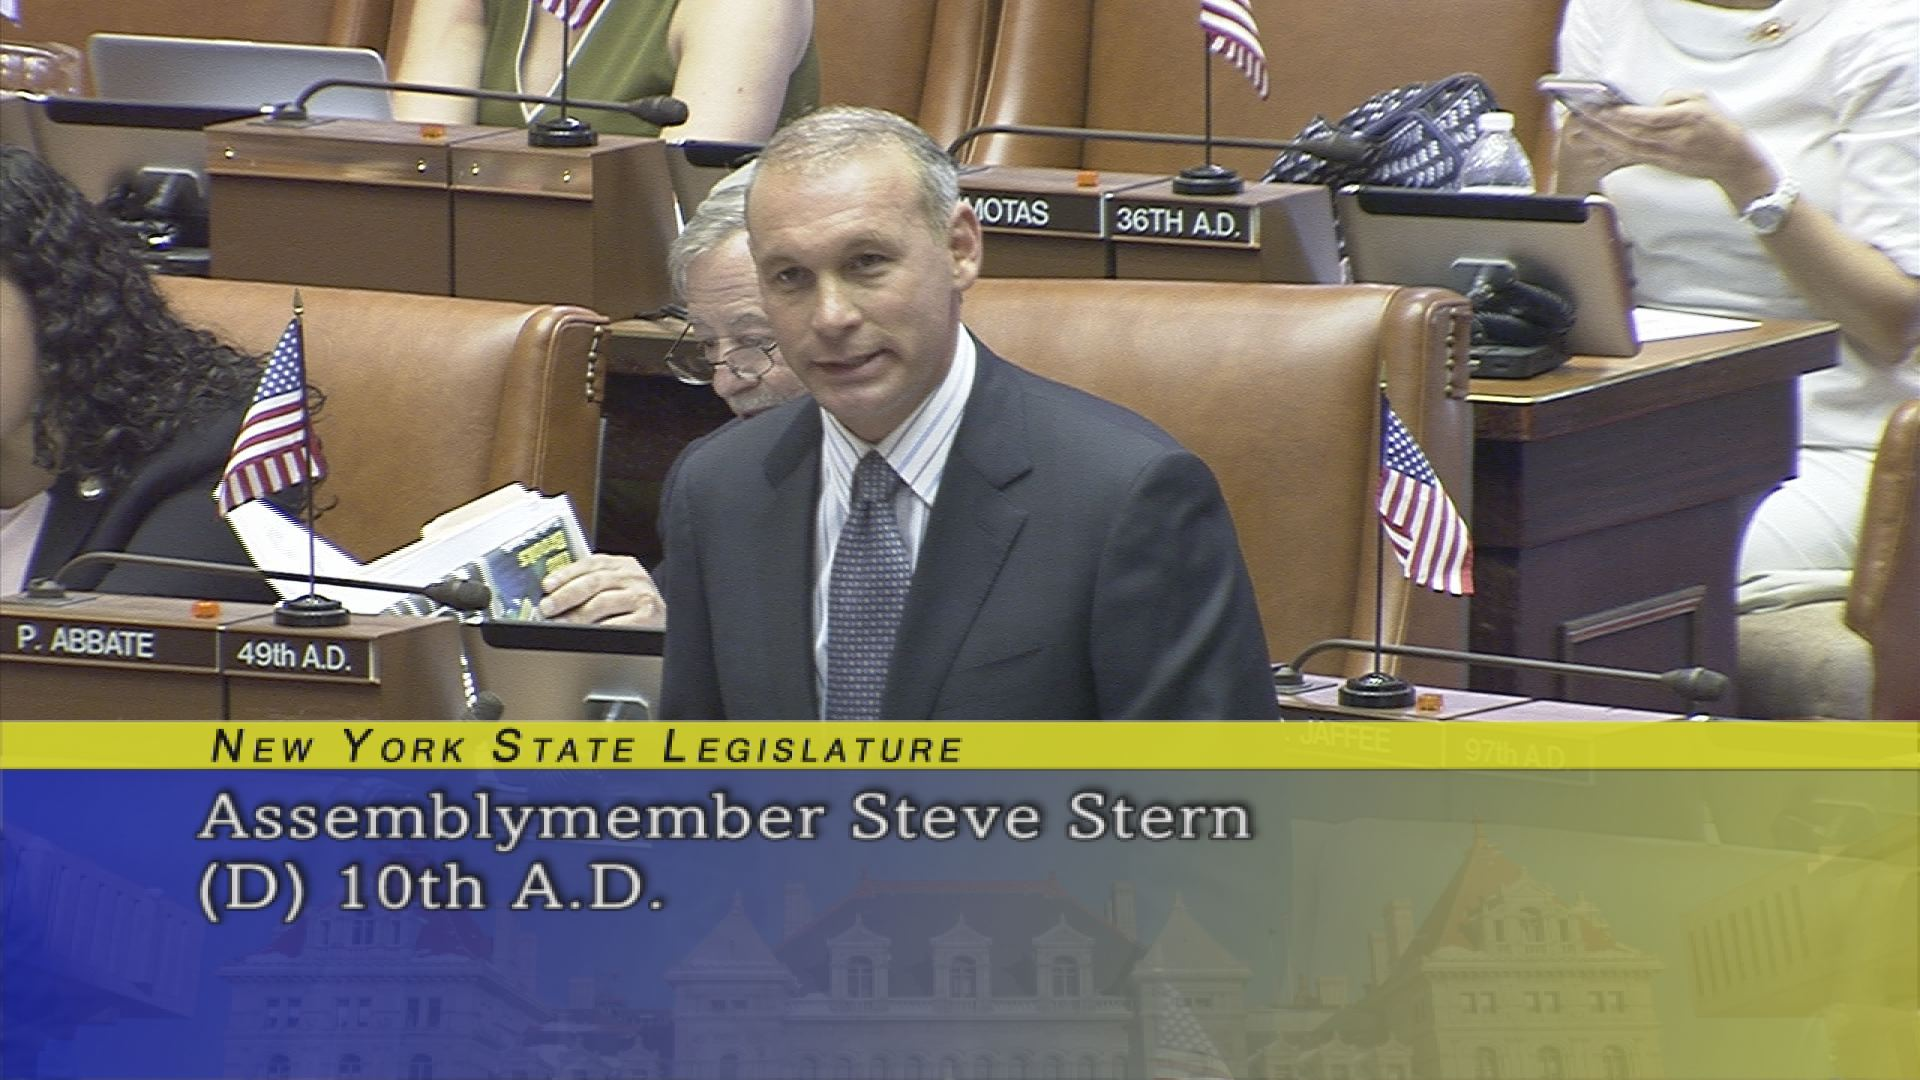 Assemblyman Stern Introduces Rabbi Howard Buechler